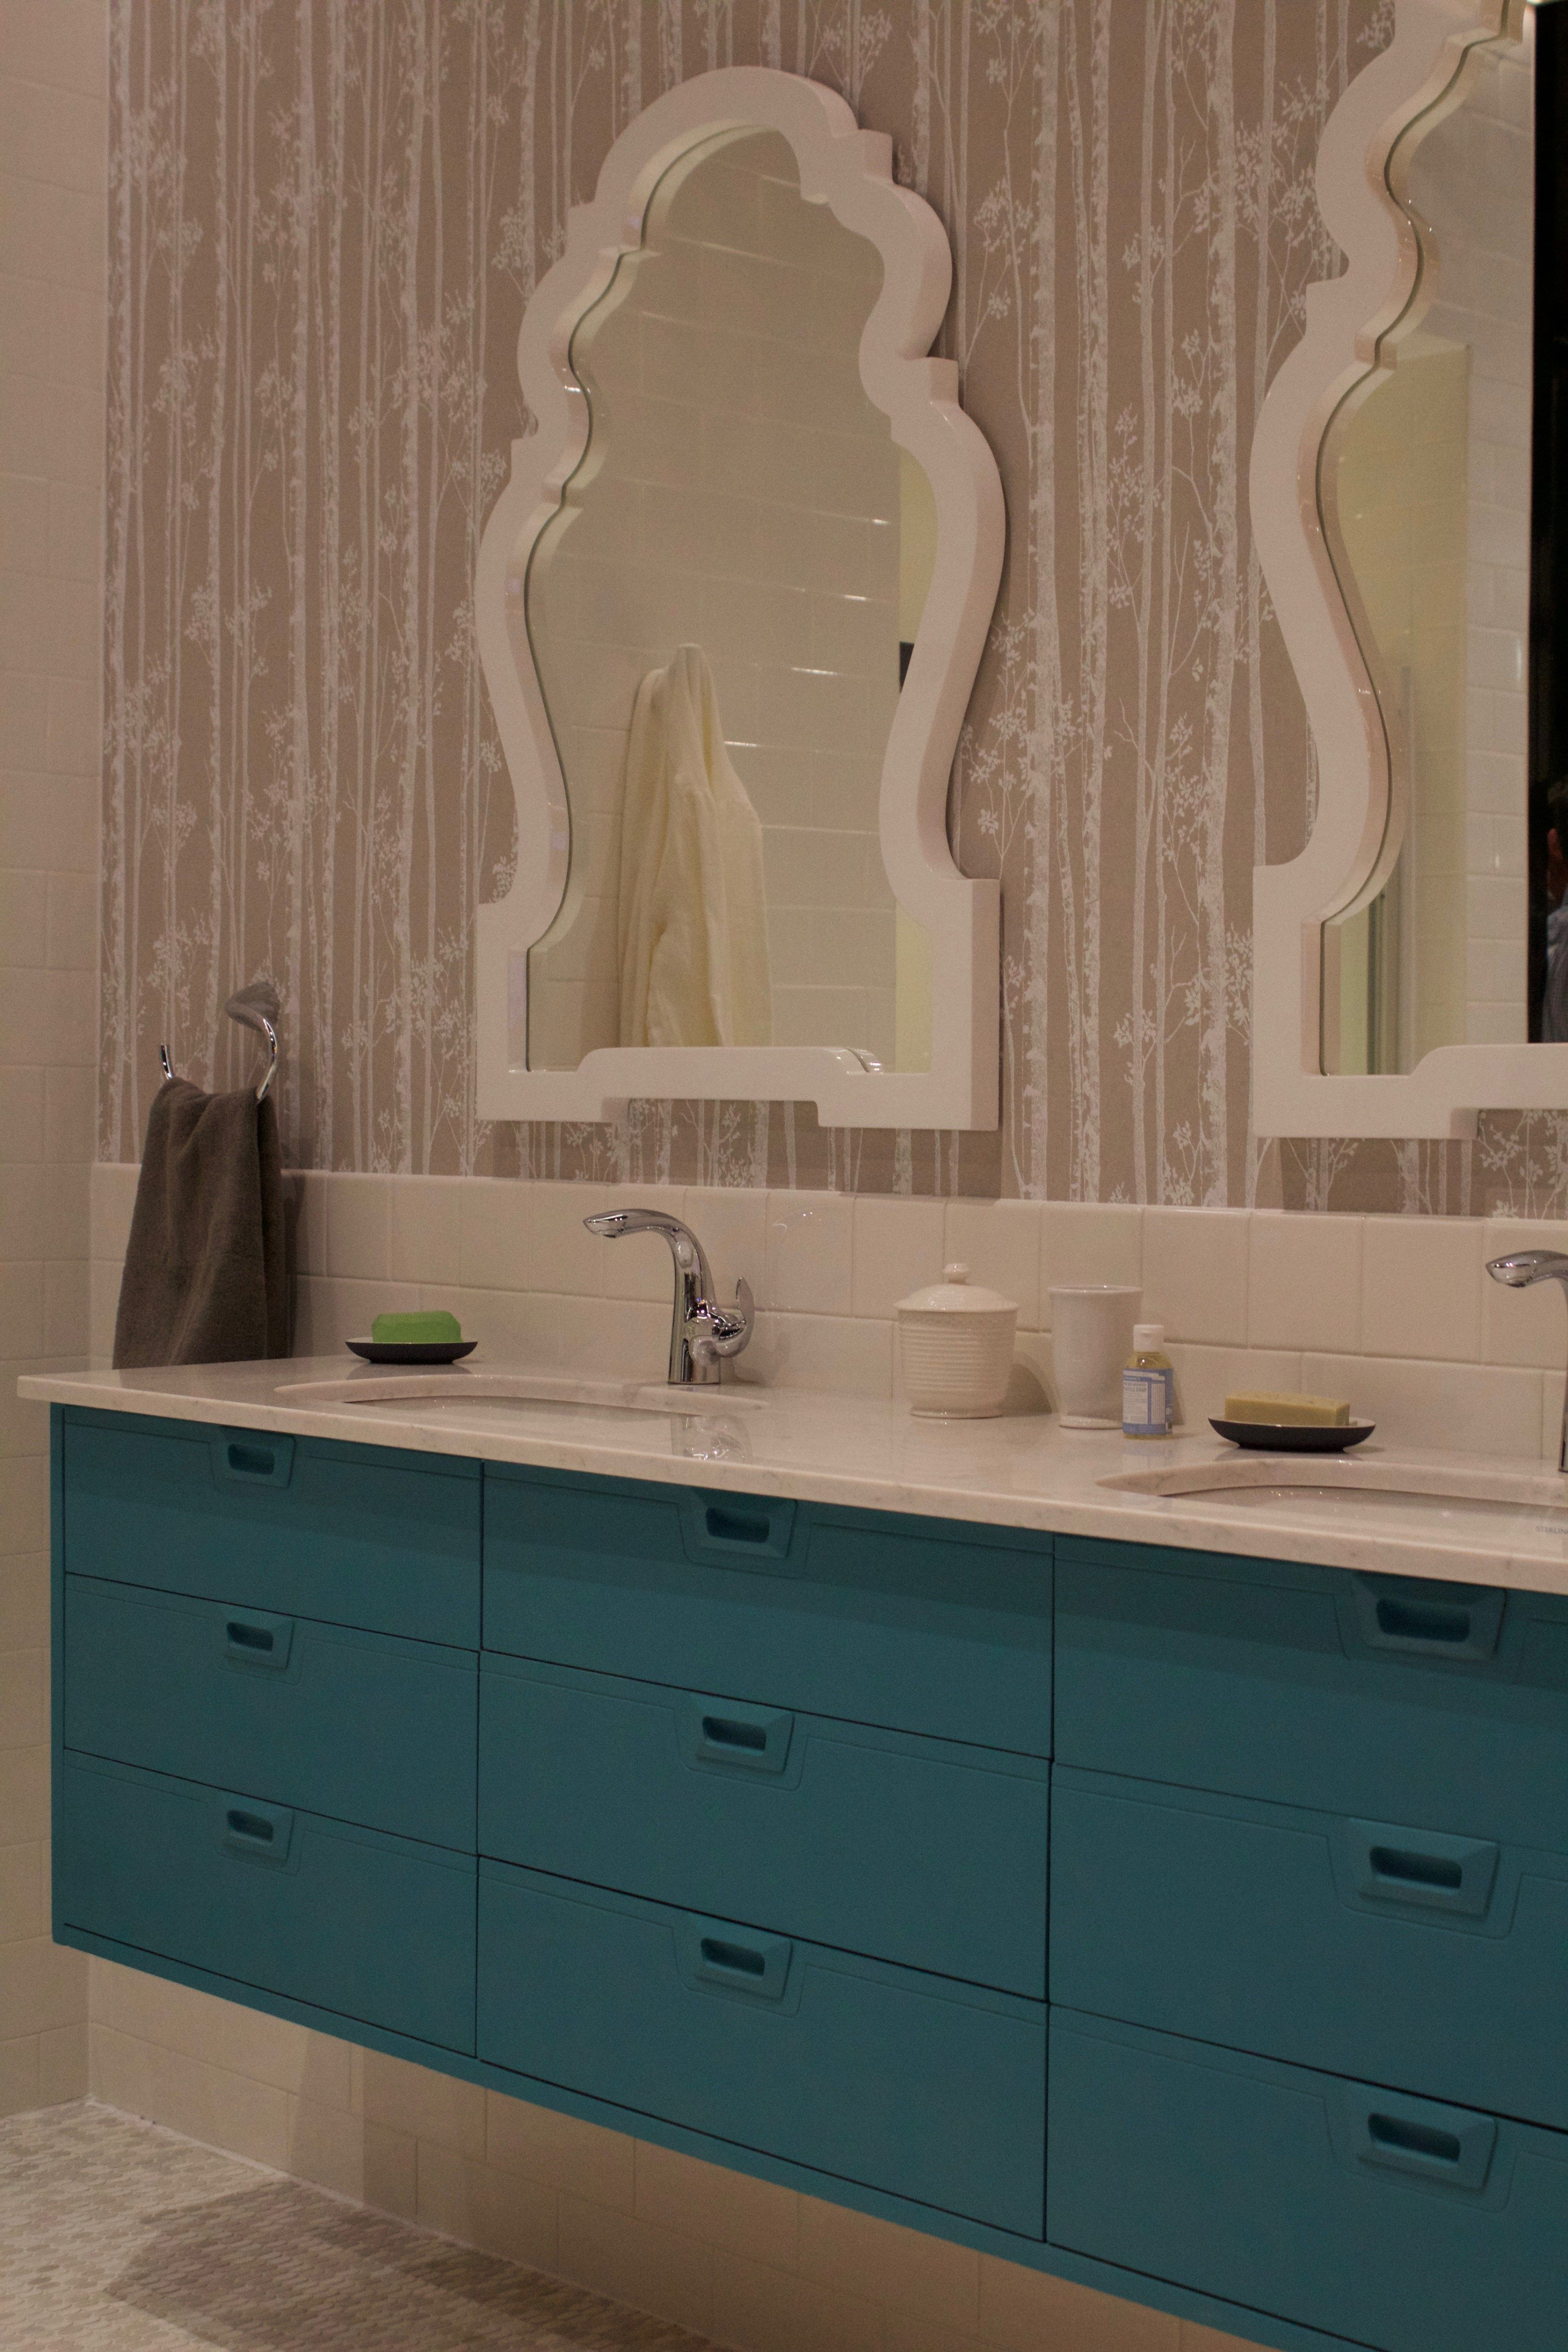 Biggest Kitchen Bath Trends To Carry You Into 2018 Bath Trends Bathroom Trends Trendy Bathroom